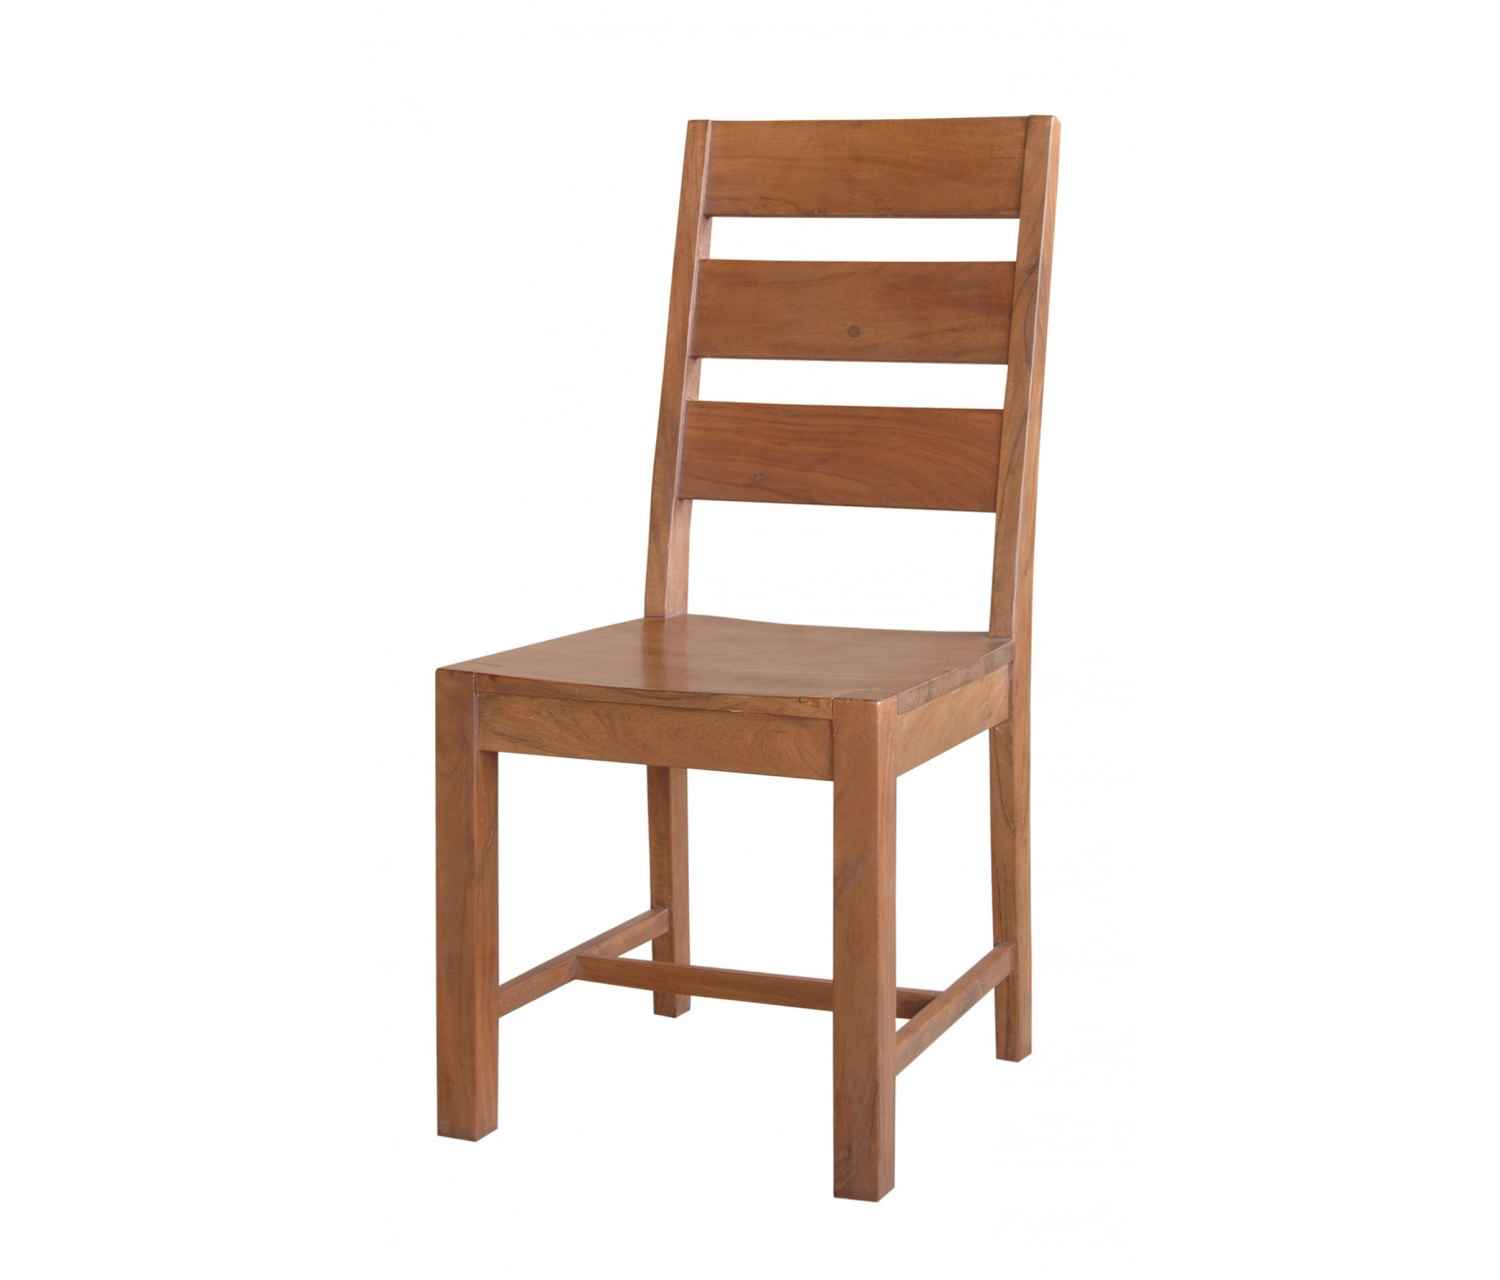 Dining Chairs with Free Shipping - Wide Selection of Dining Room